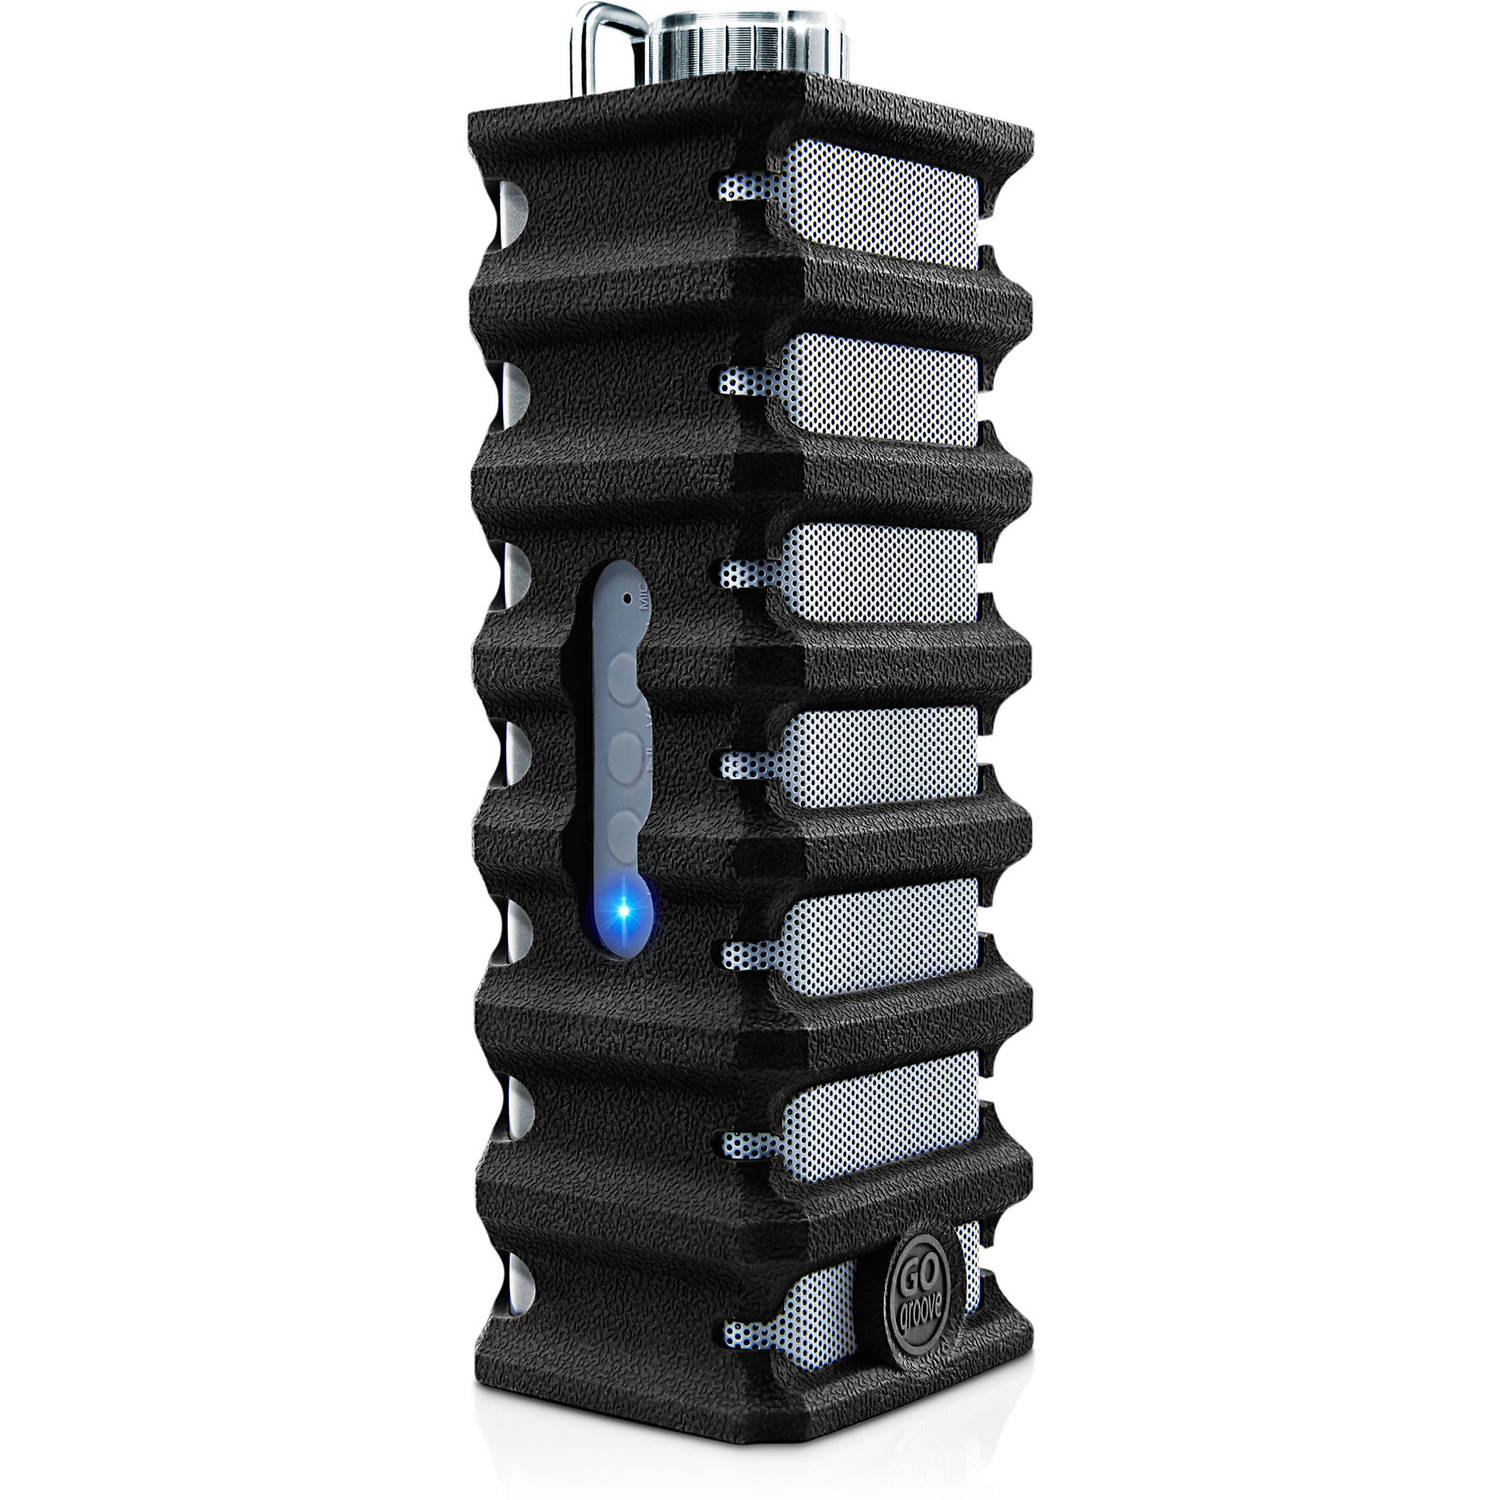 GOgroove Rugged Bluetooth IPX4 Water Resistant Outdoor Speaker with Shock Proof Silicone Protection & Built In Microphone - Works With Apple , Samsung , LG and More Smartphones!